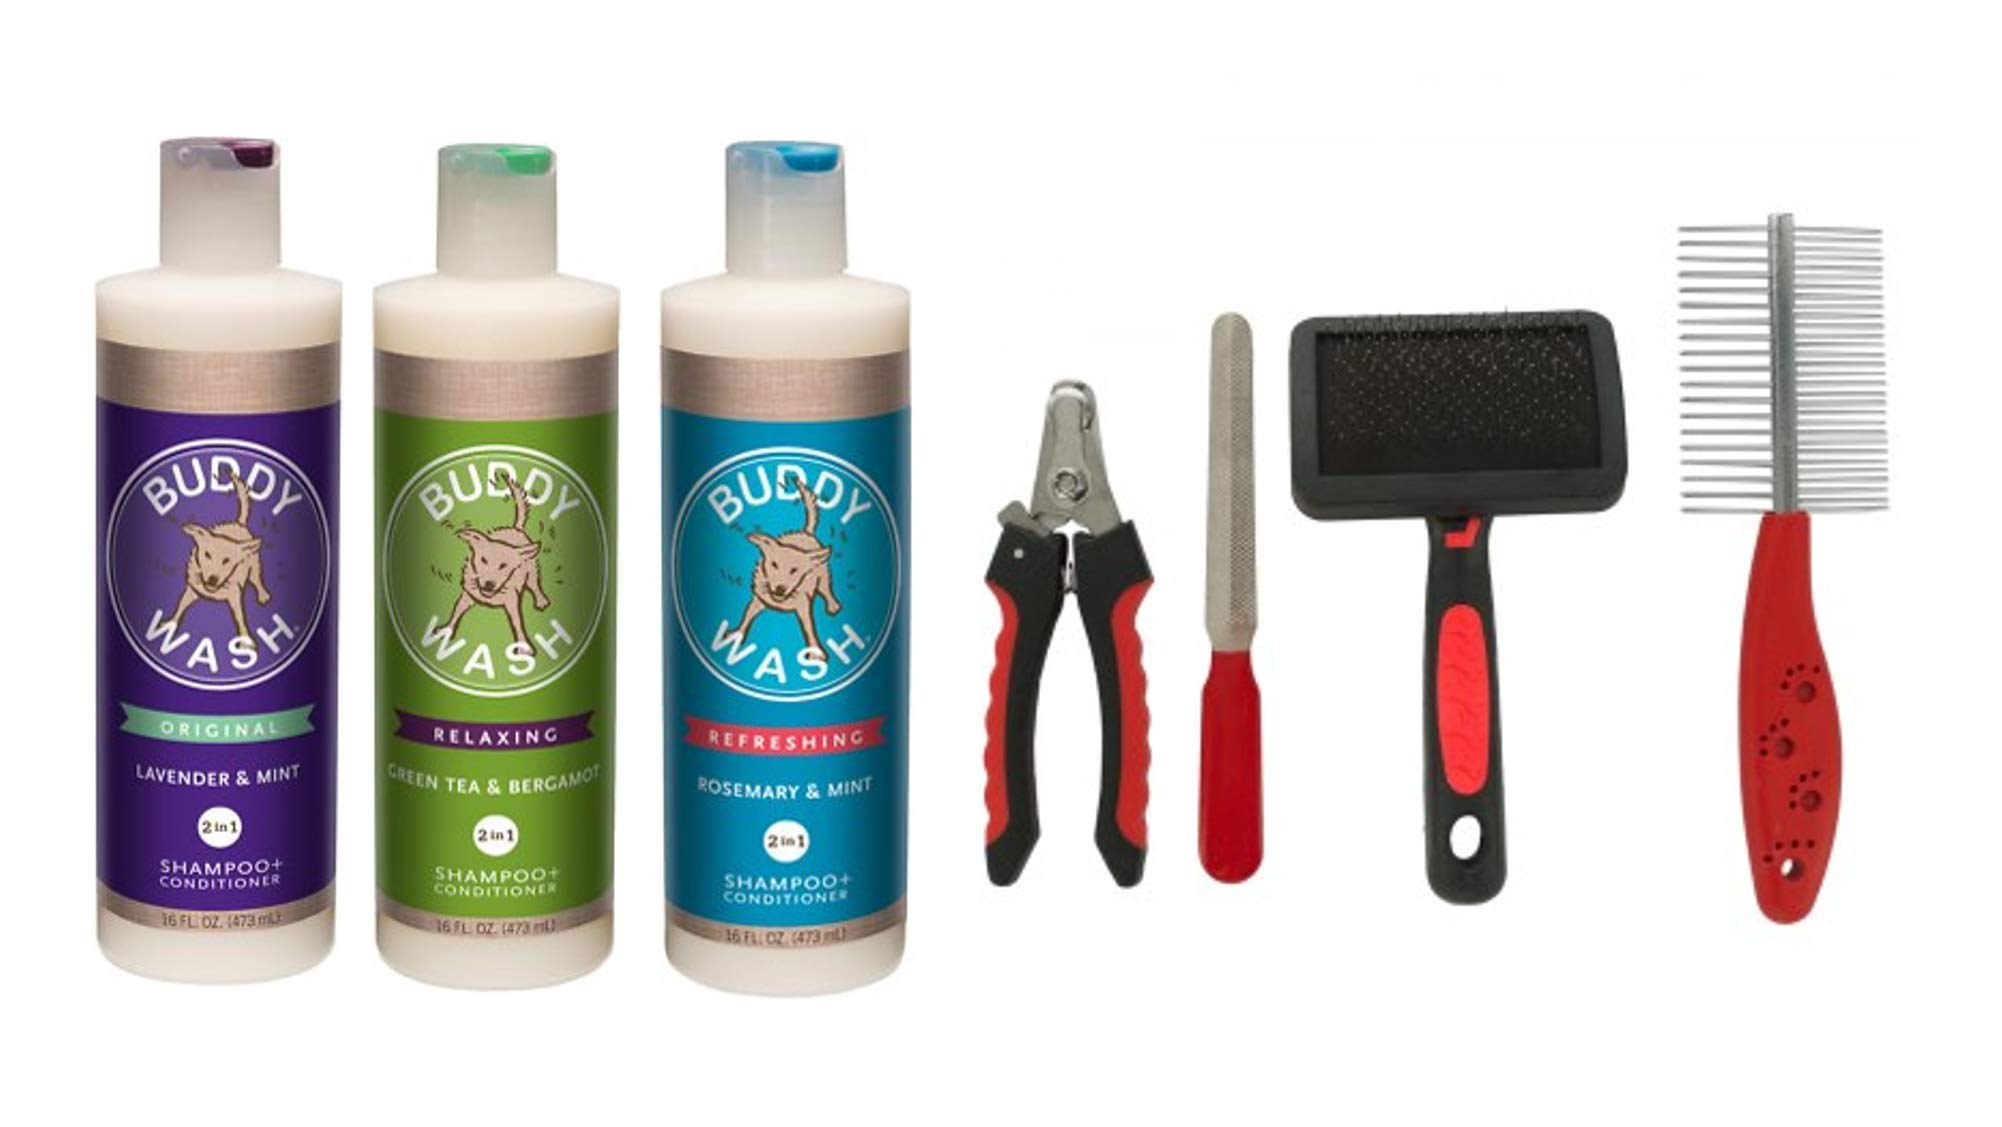 Cloud Star Buddy Wash Dog Shampoo and Conditioner (3) 16 oz Bottles 1 of Each Scent Plus 1 Dog Brush by Cloud Star